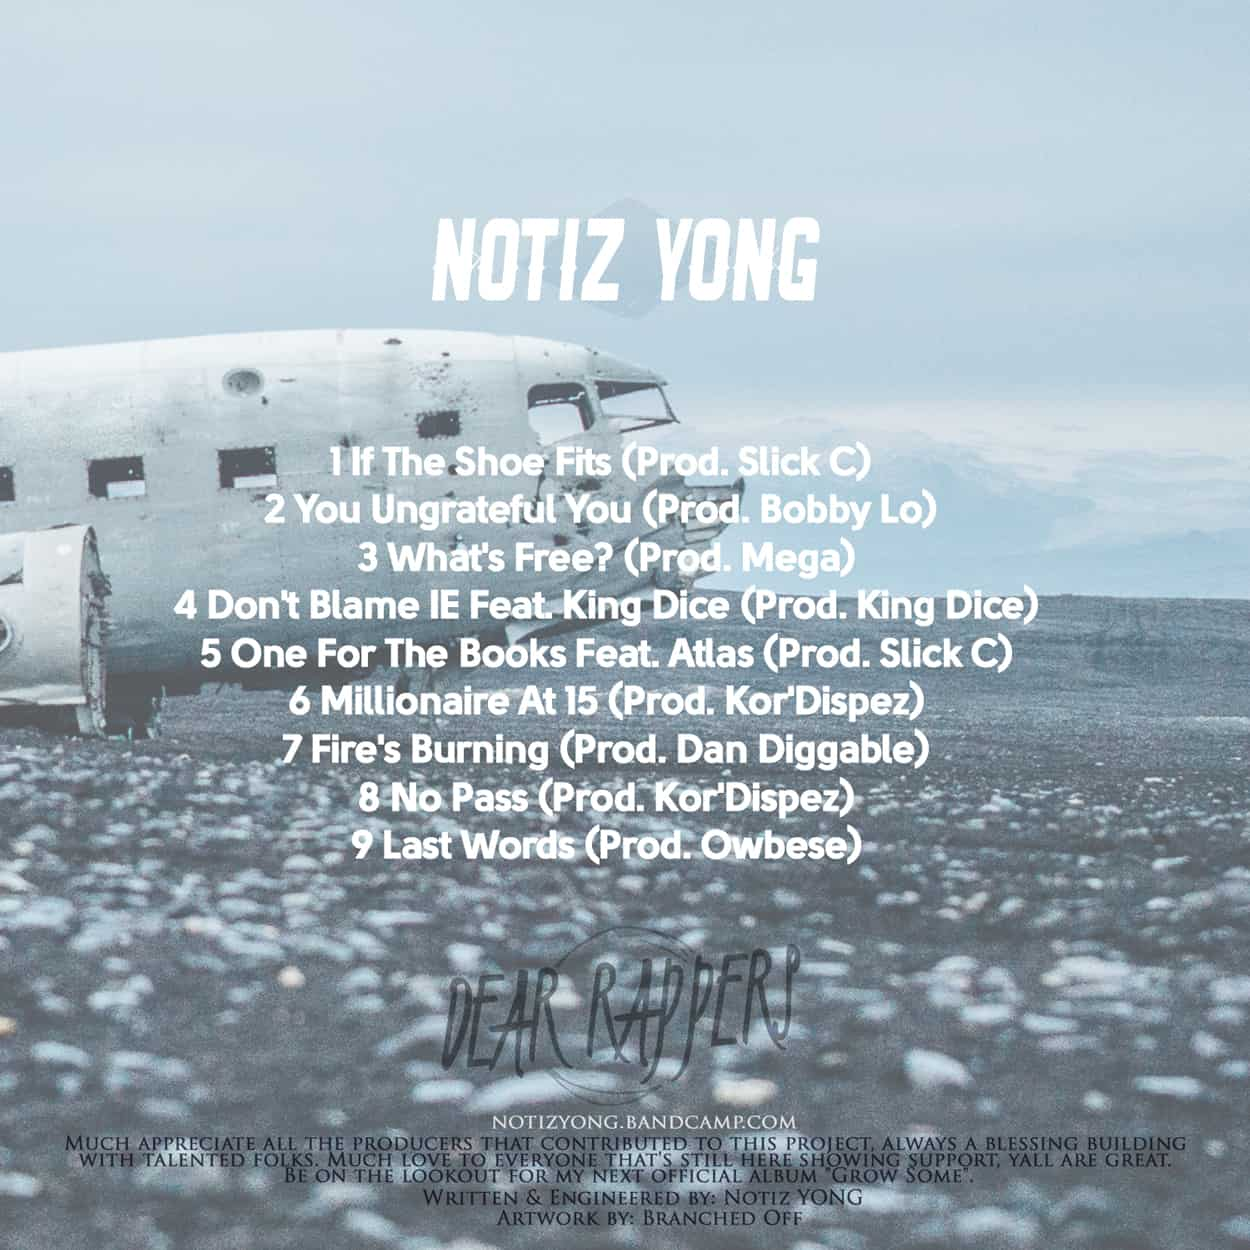 notiz yong - dear rappers - album art design